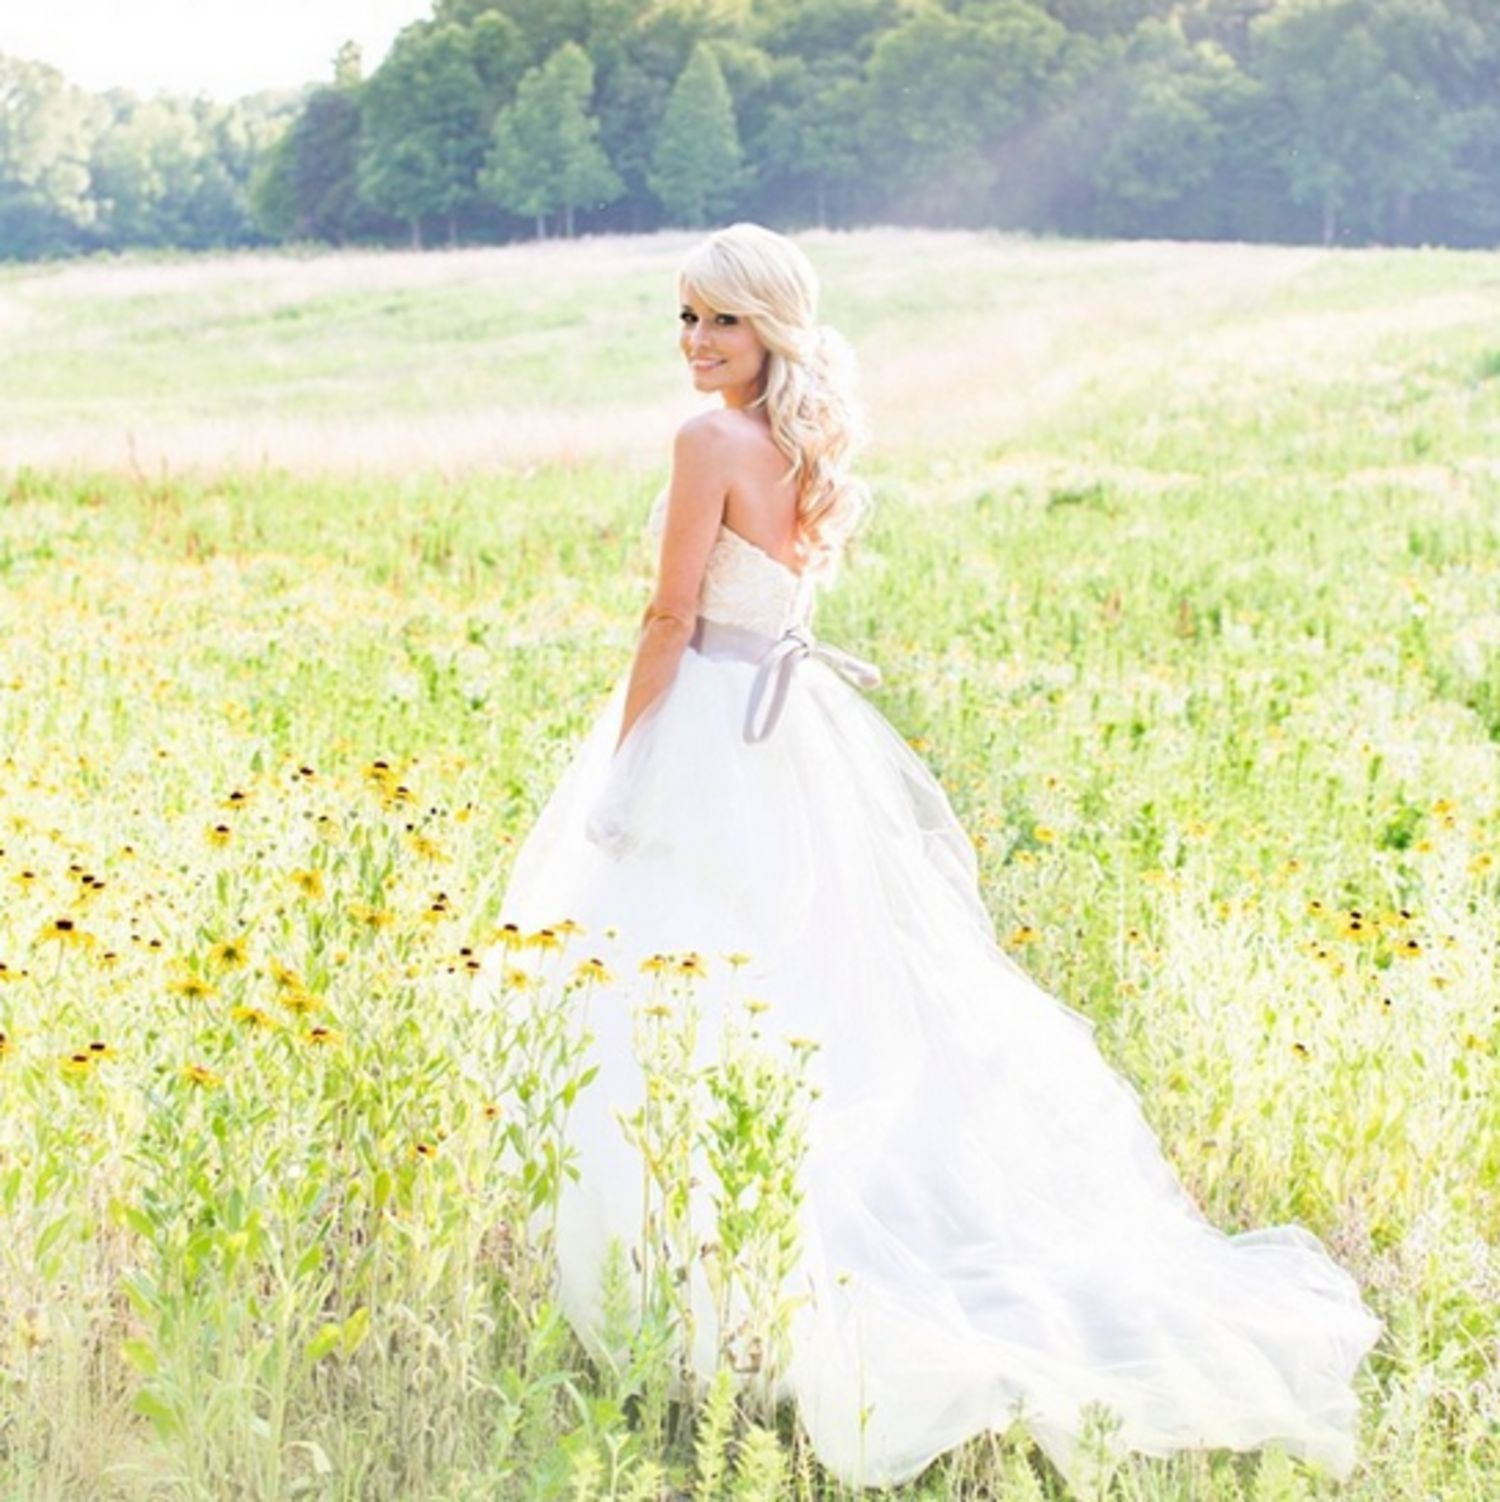 And Now New Photos From The Bachelorette S Emily Maynard S Wedding Bridal Portraits Celebrity Wedding Dresses Emily Maynard Wedding